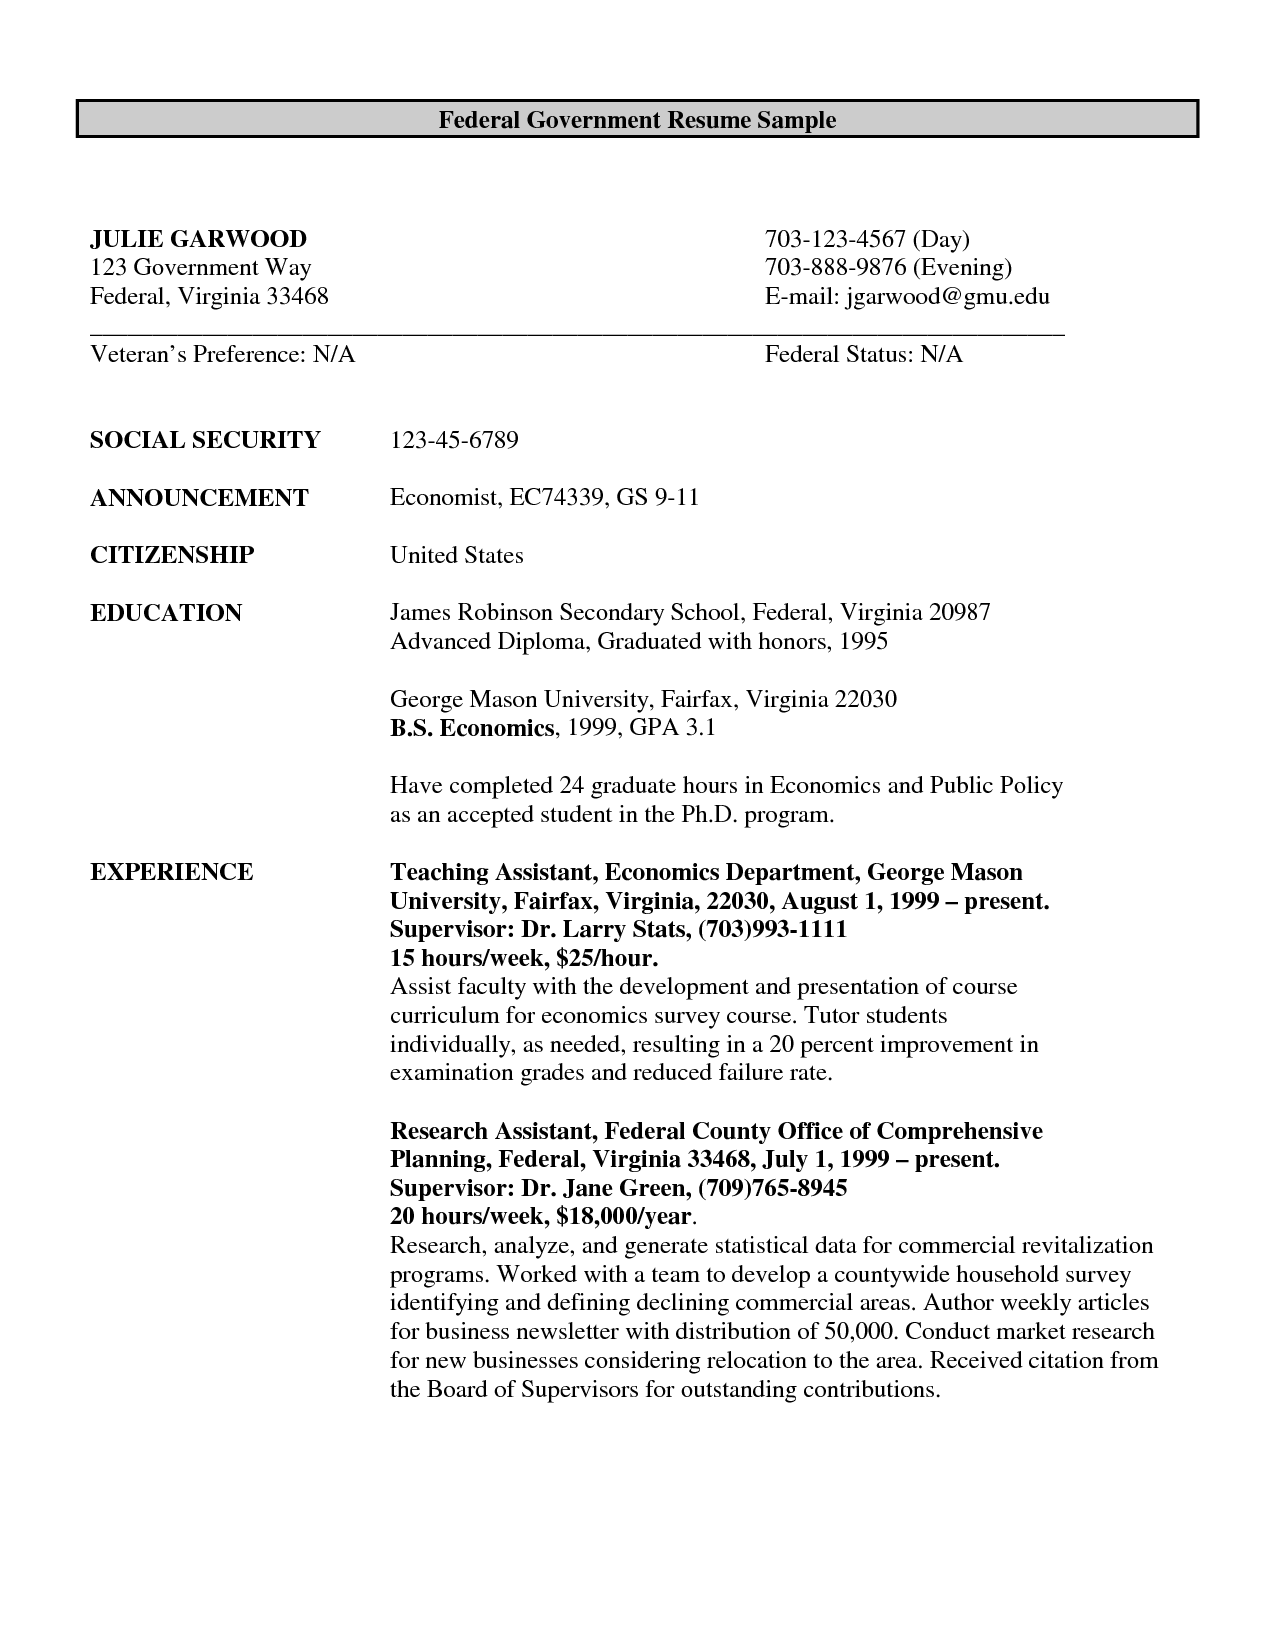 Government Job Federal resume, Job resume examples, Job